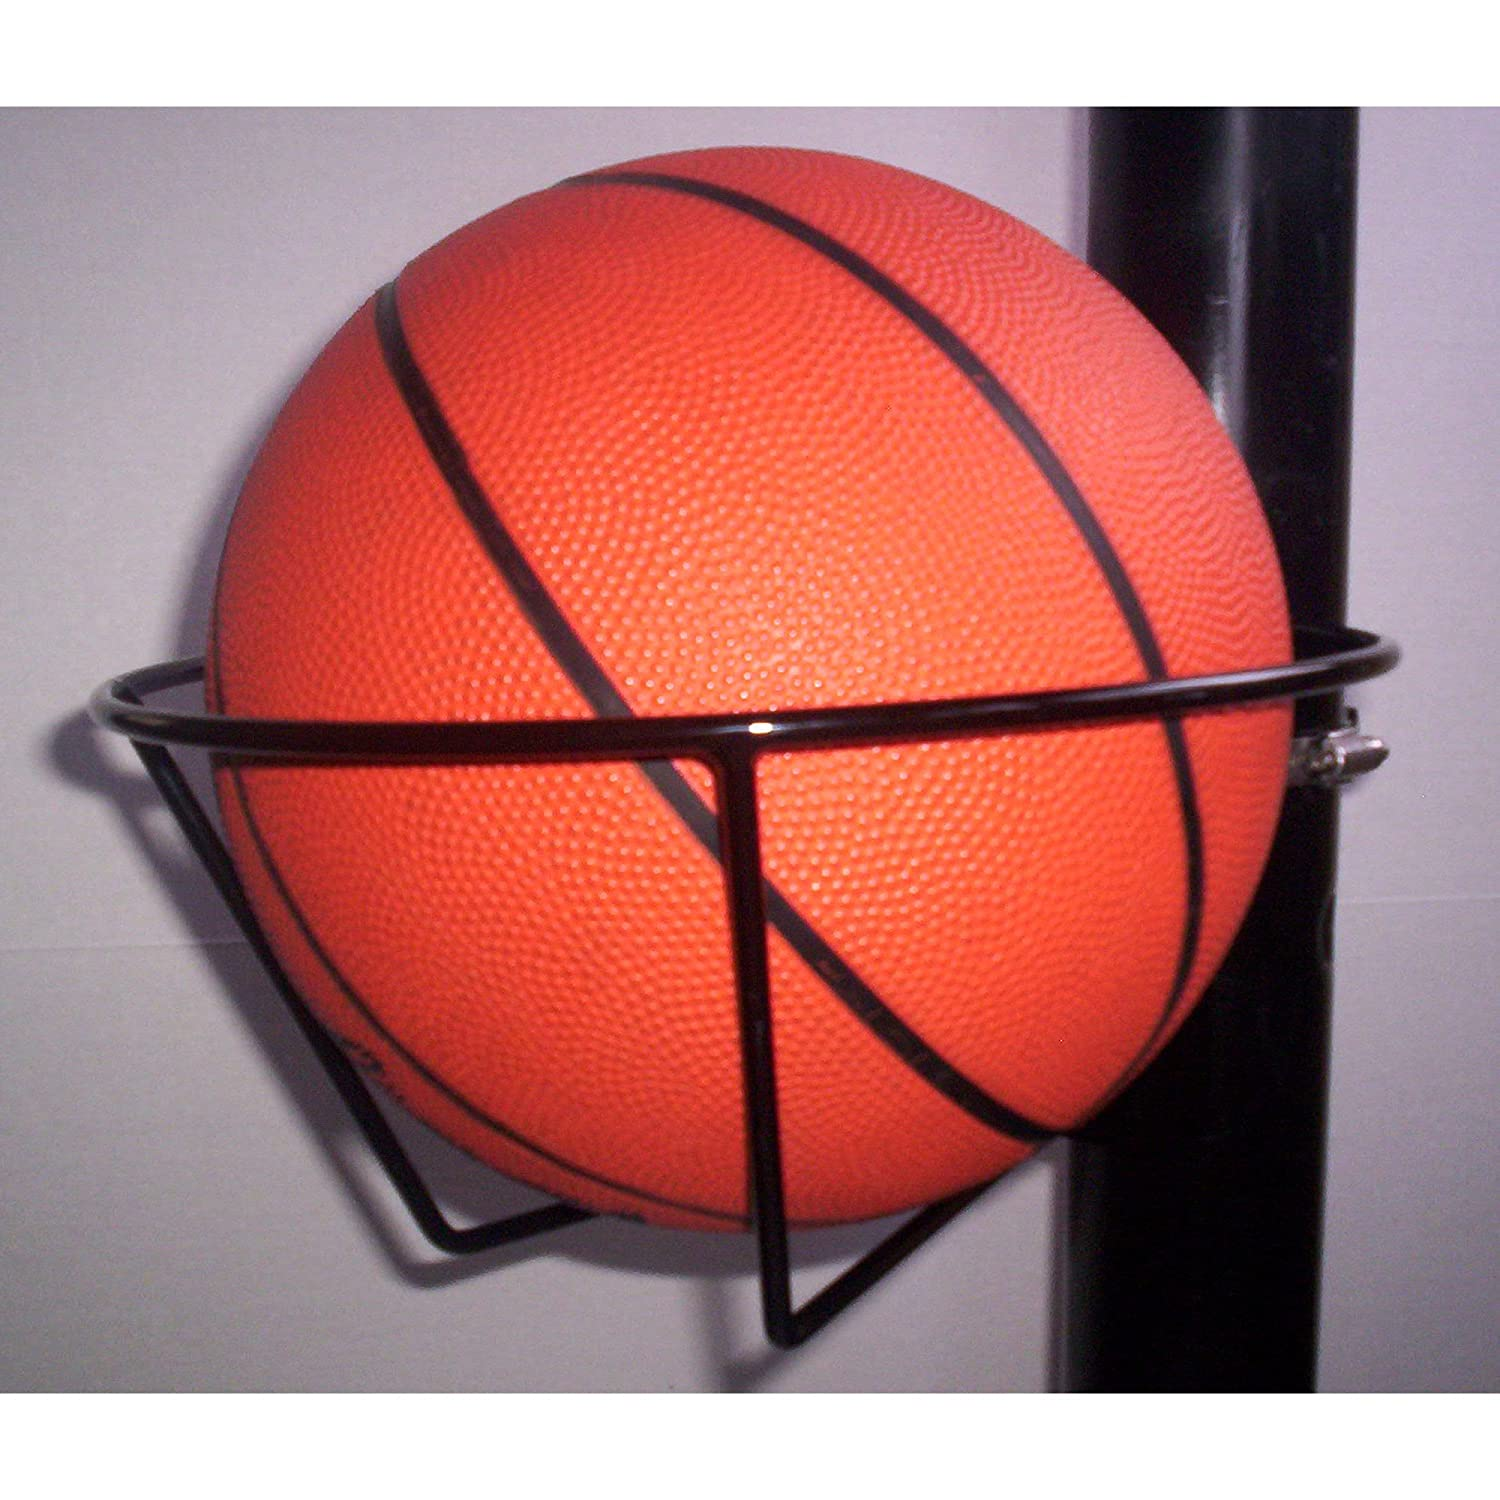 Basketball Butler One Storage Rack Blue Collar Industries